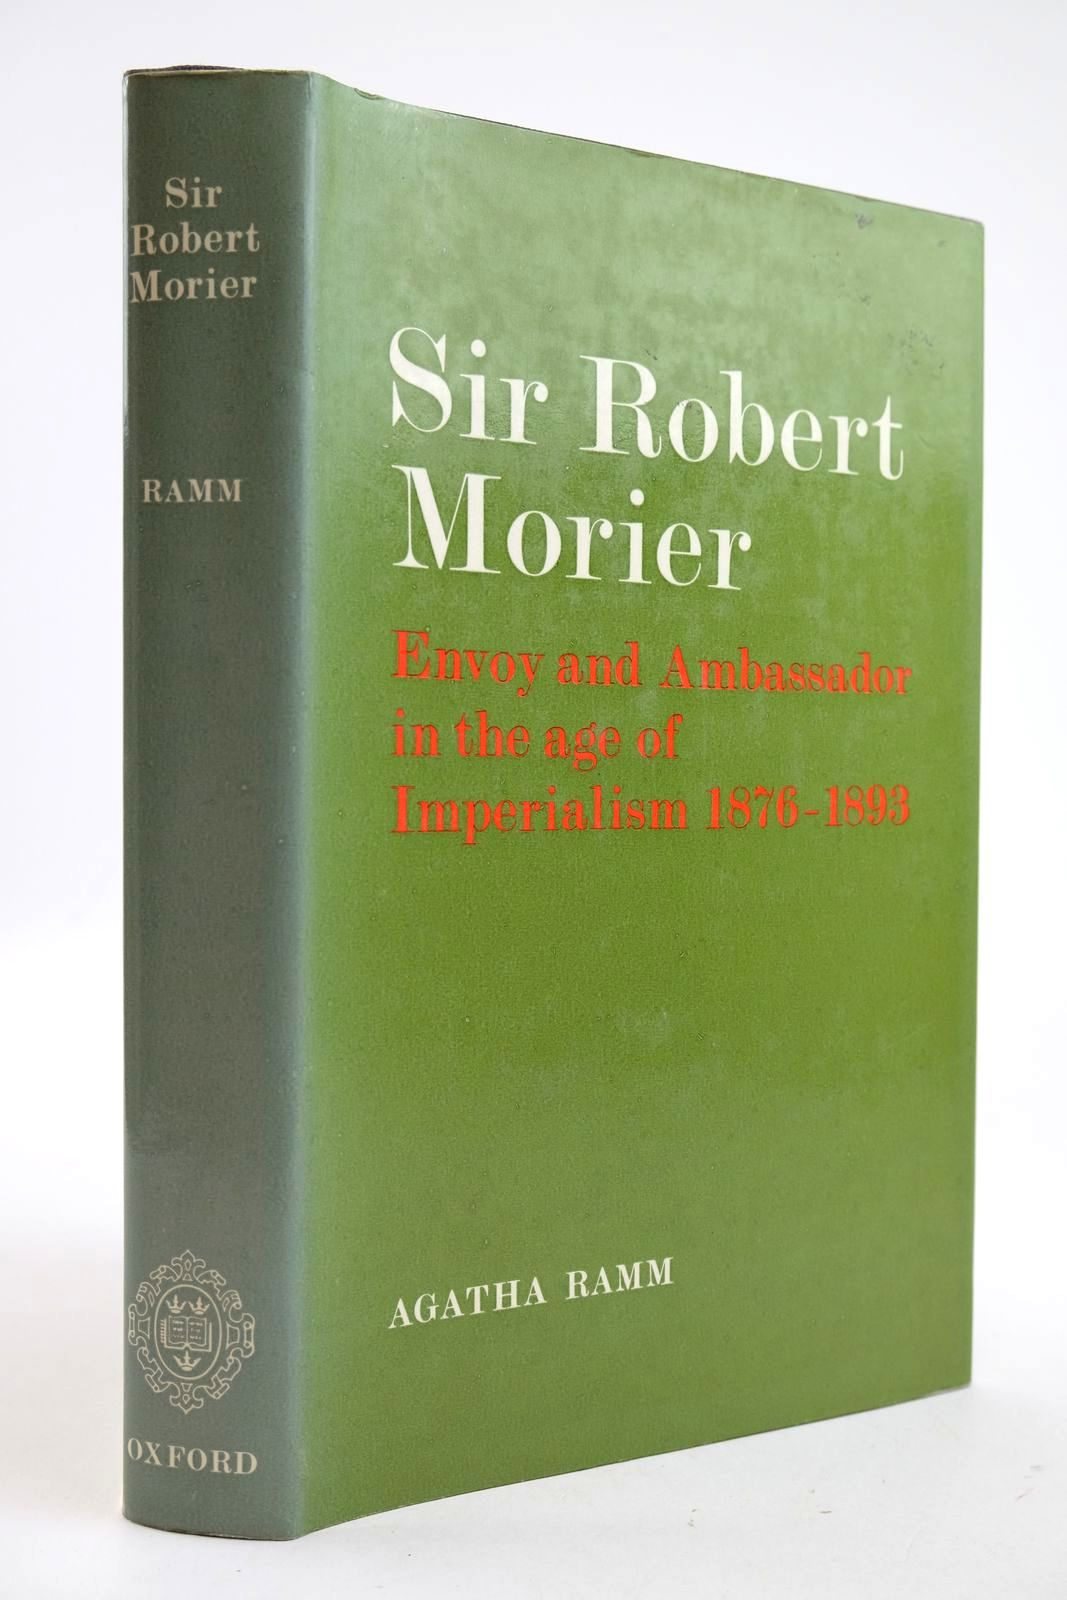 Photo of SIR ROBERT MORIER ENVOY AND AMBASSADOR IN THE AGE OF IMPERIALISM 1876-1893 written by Ramm, Agatha published by Oxford at the Clarendon Press (STOCK CODE: 2132944)  for sale by Stella & Rose's Books